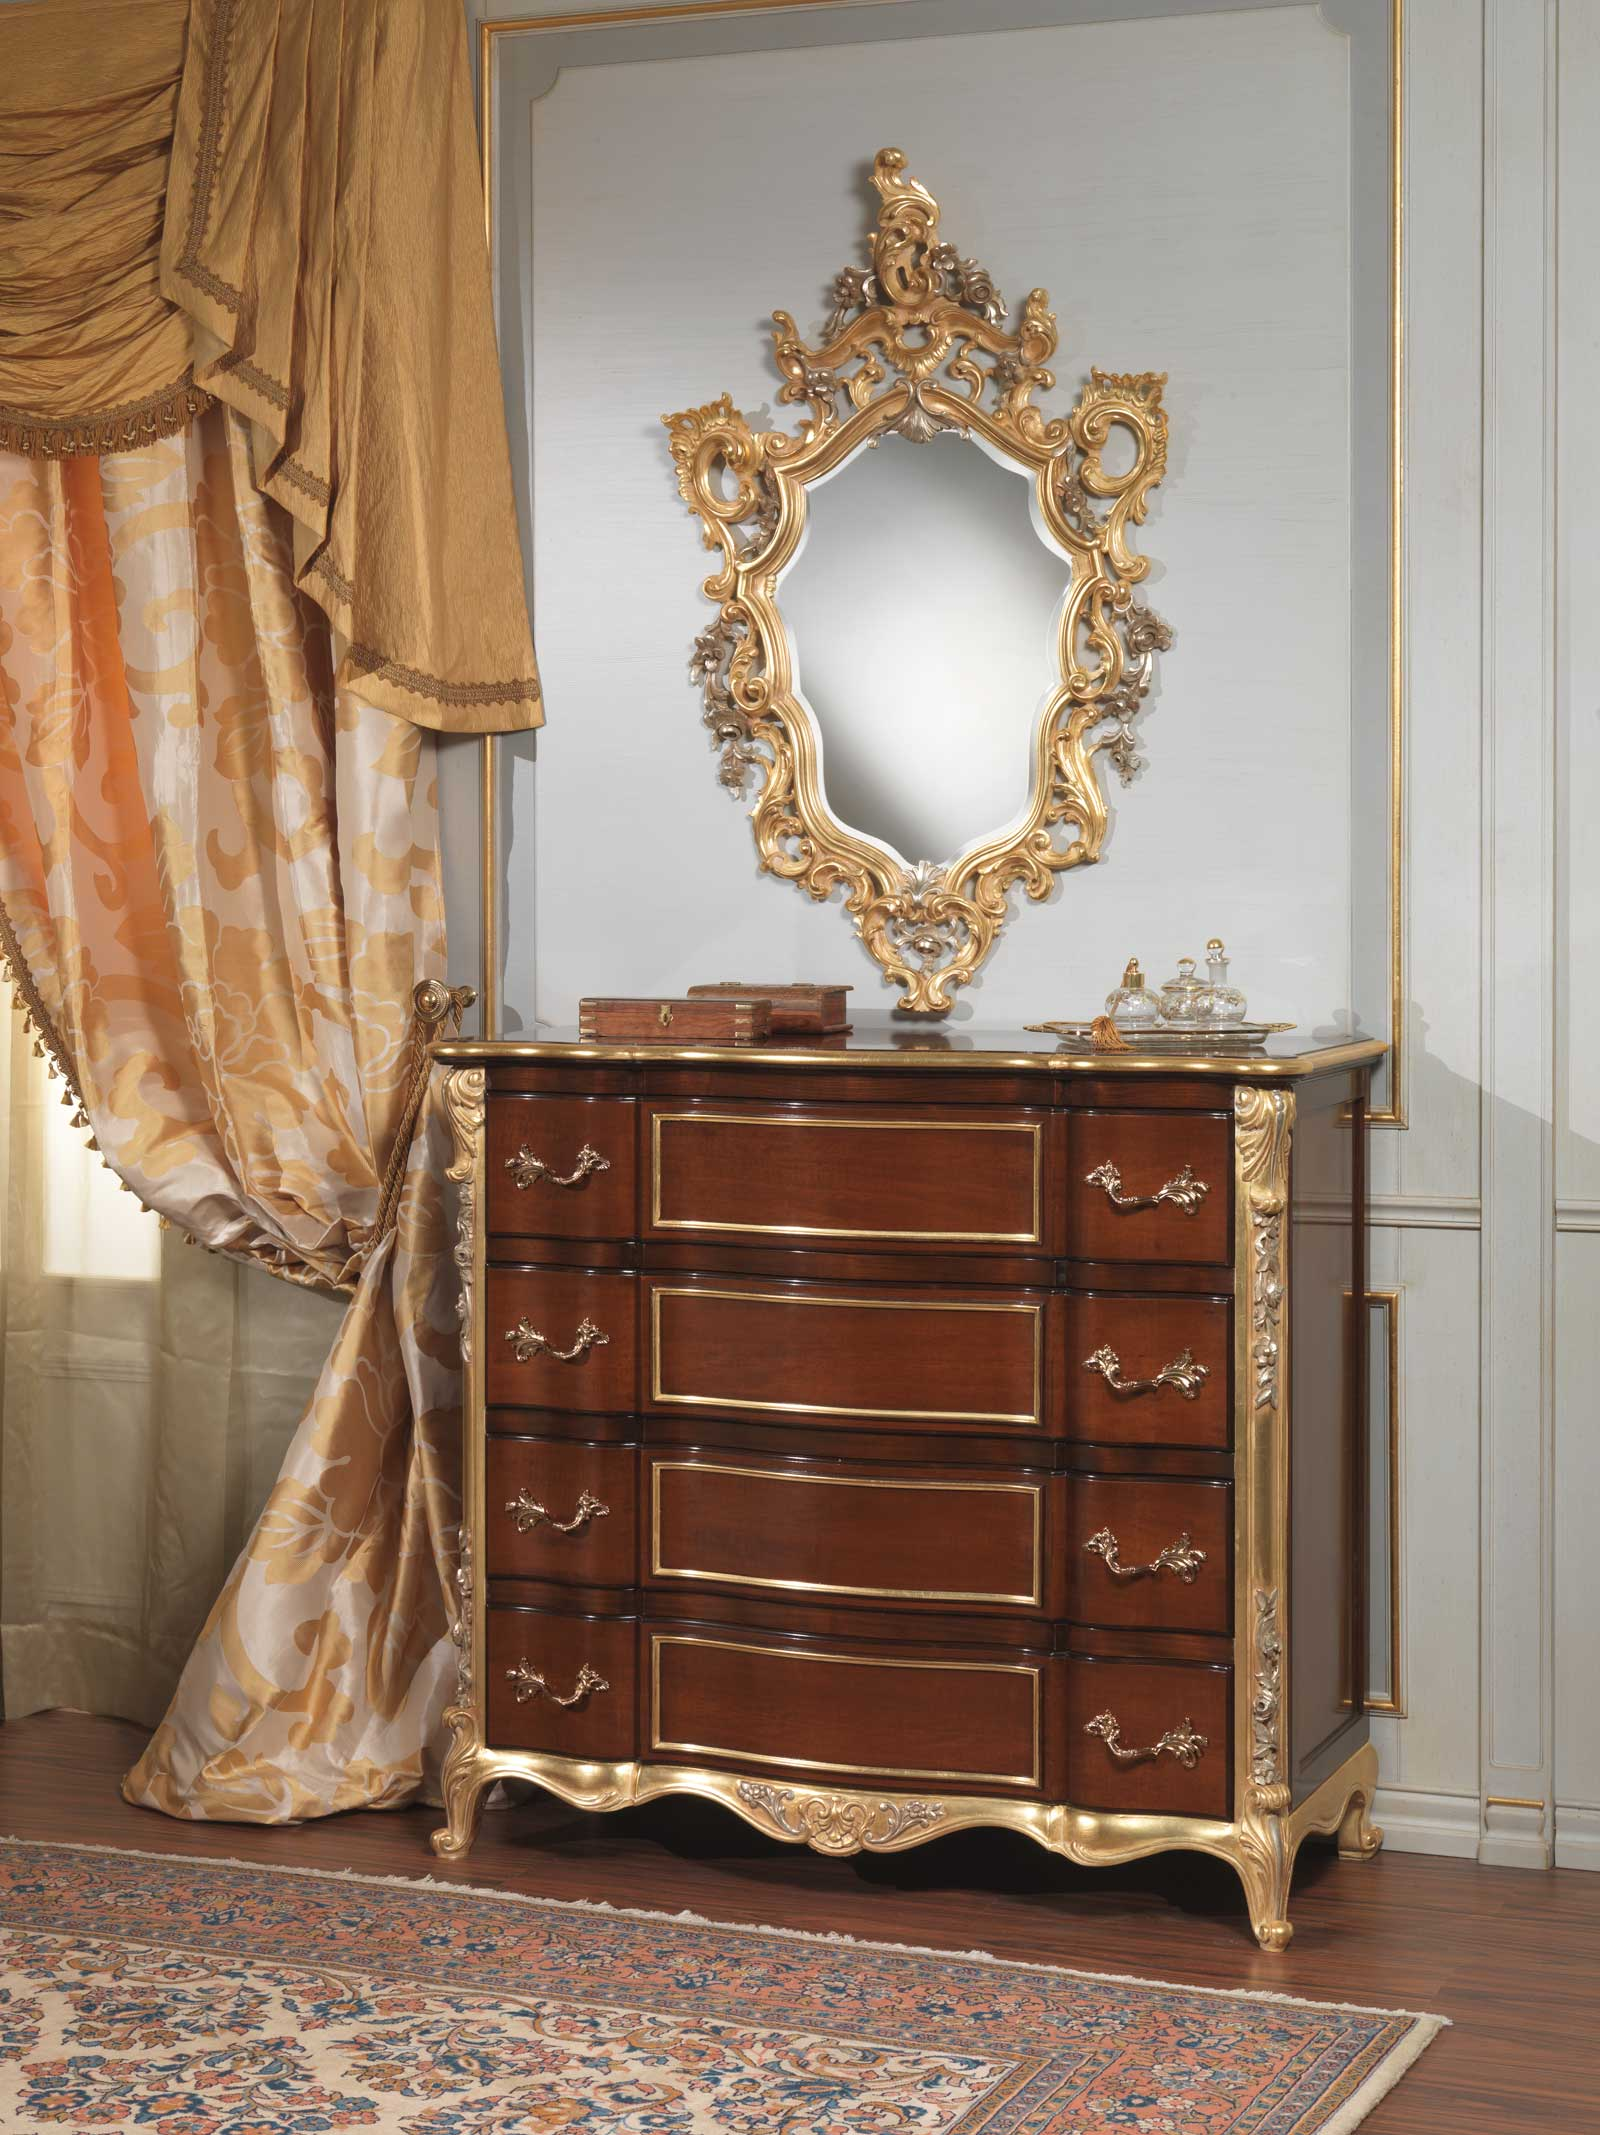 Classic italian bedroom 18th century chest of drawers and